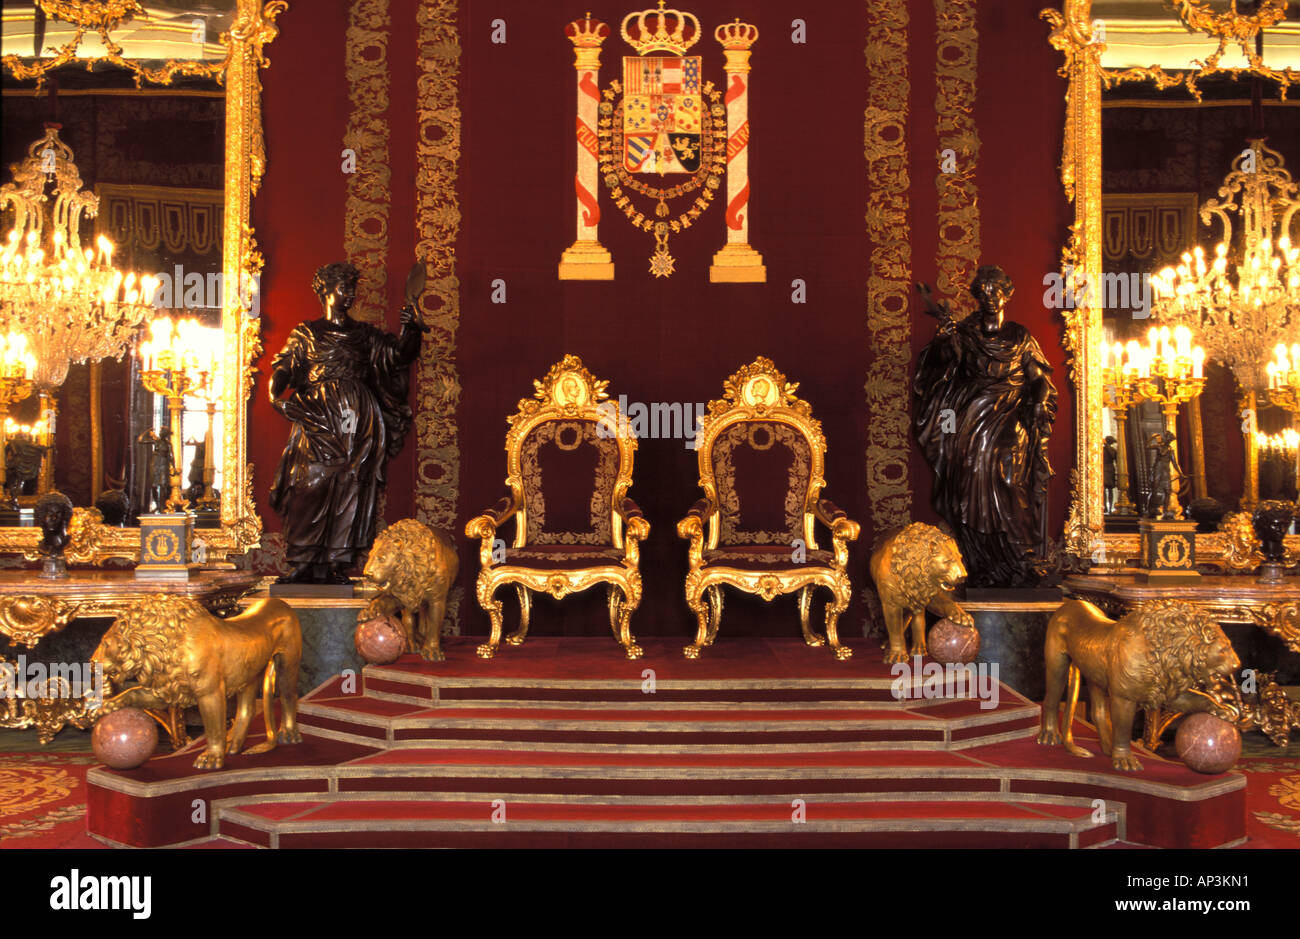 Spain Madrid Royal Palace Throne Room Stock Photo